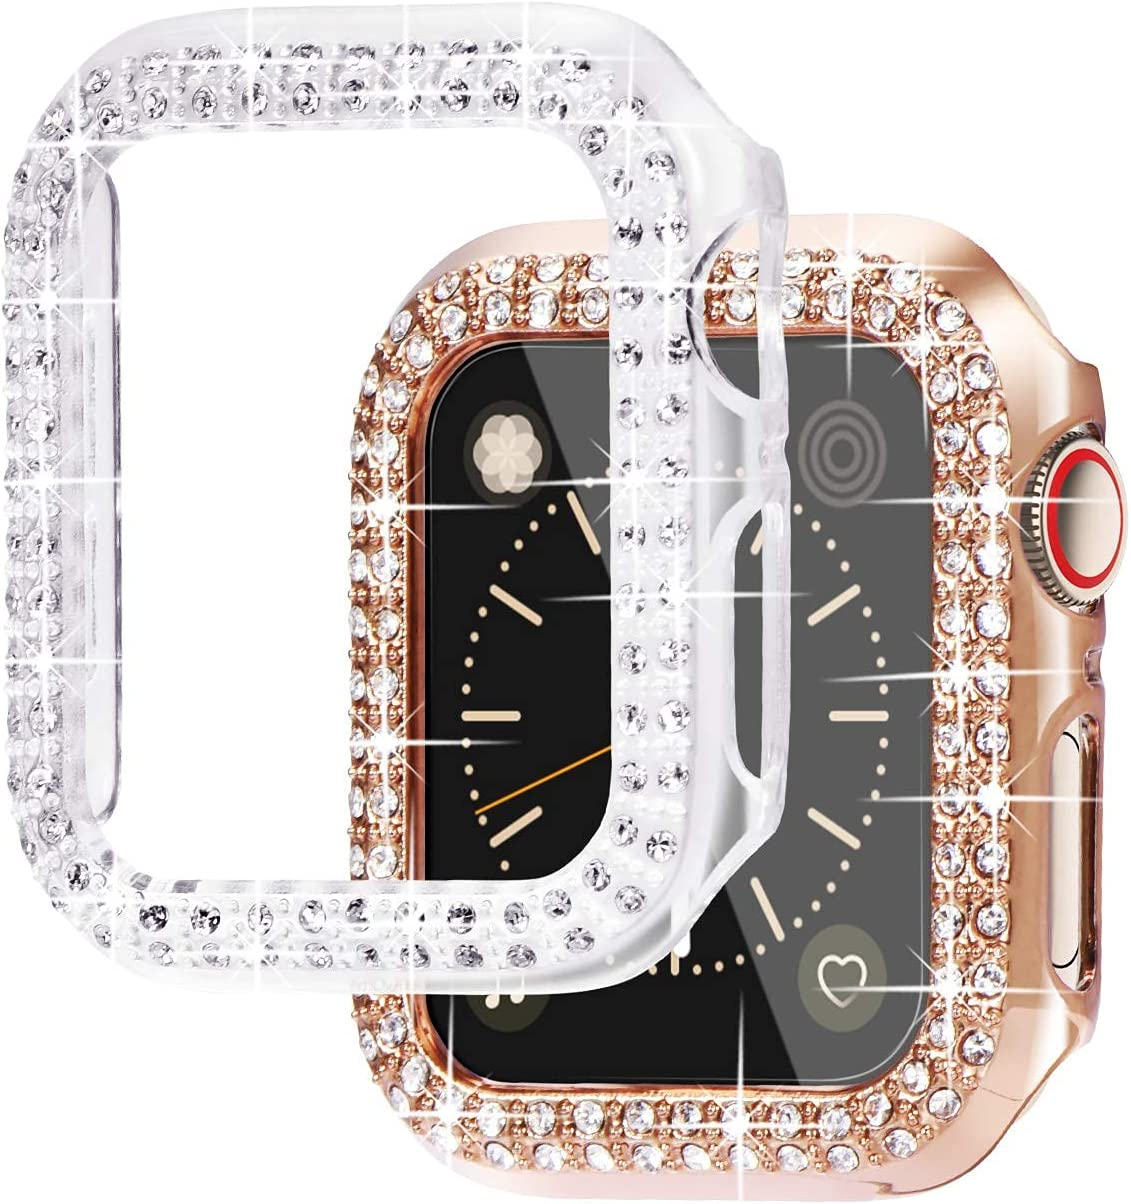 chenghuax Compatible with Max 51% OFF 38mm 40mm New mail order Cases Diamond 42mm 44mm